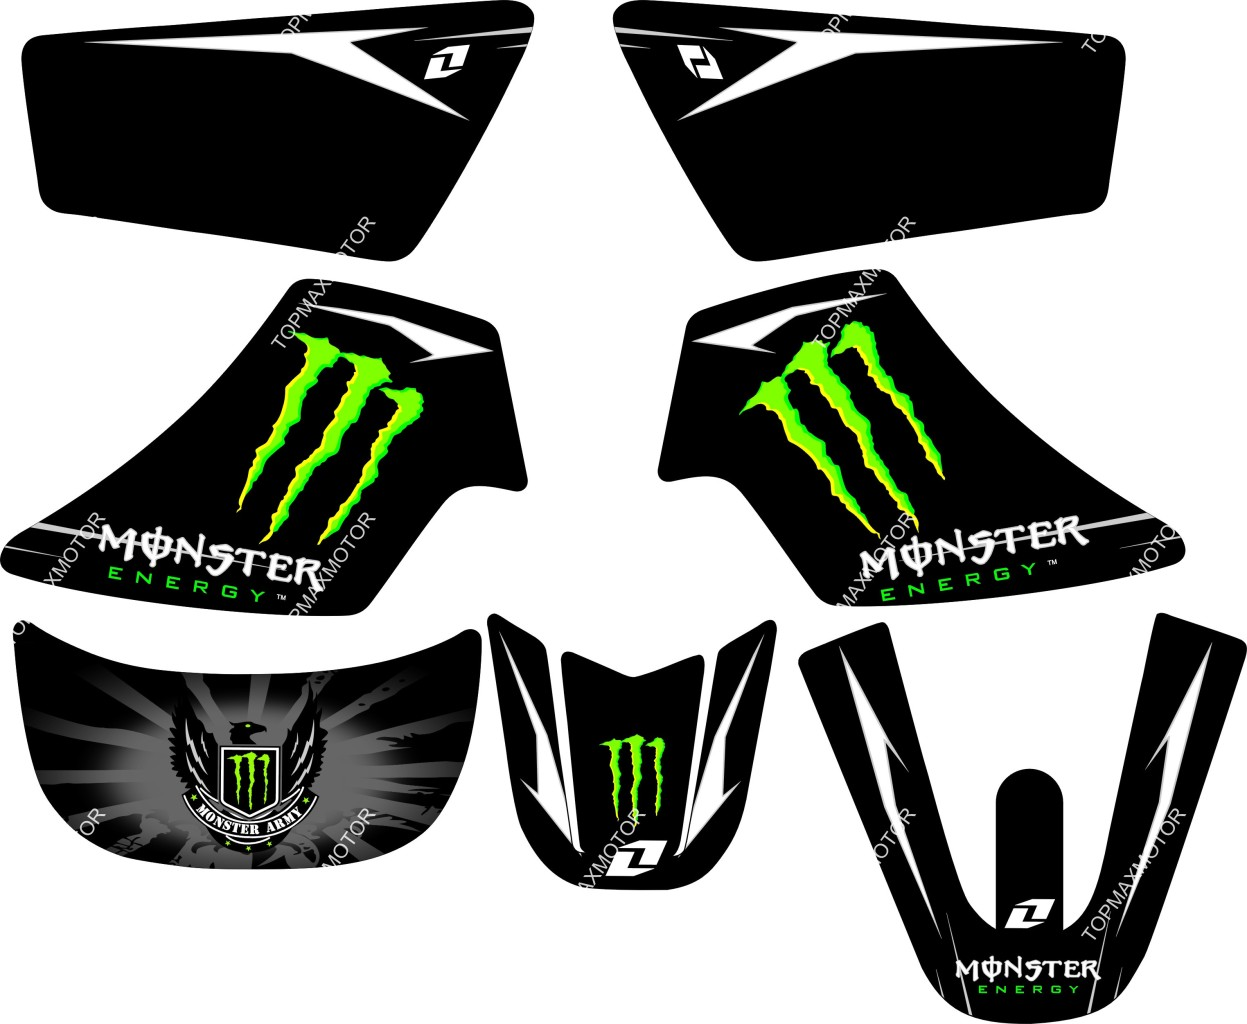 MONSTER GRAPHICS DECAL STICKERS YAMAHA PW50 PW 50